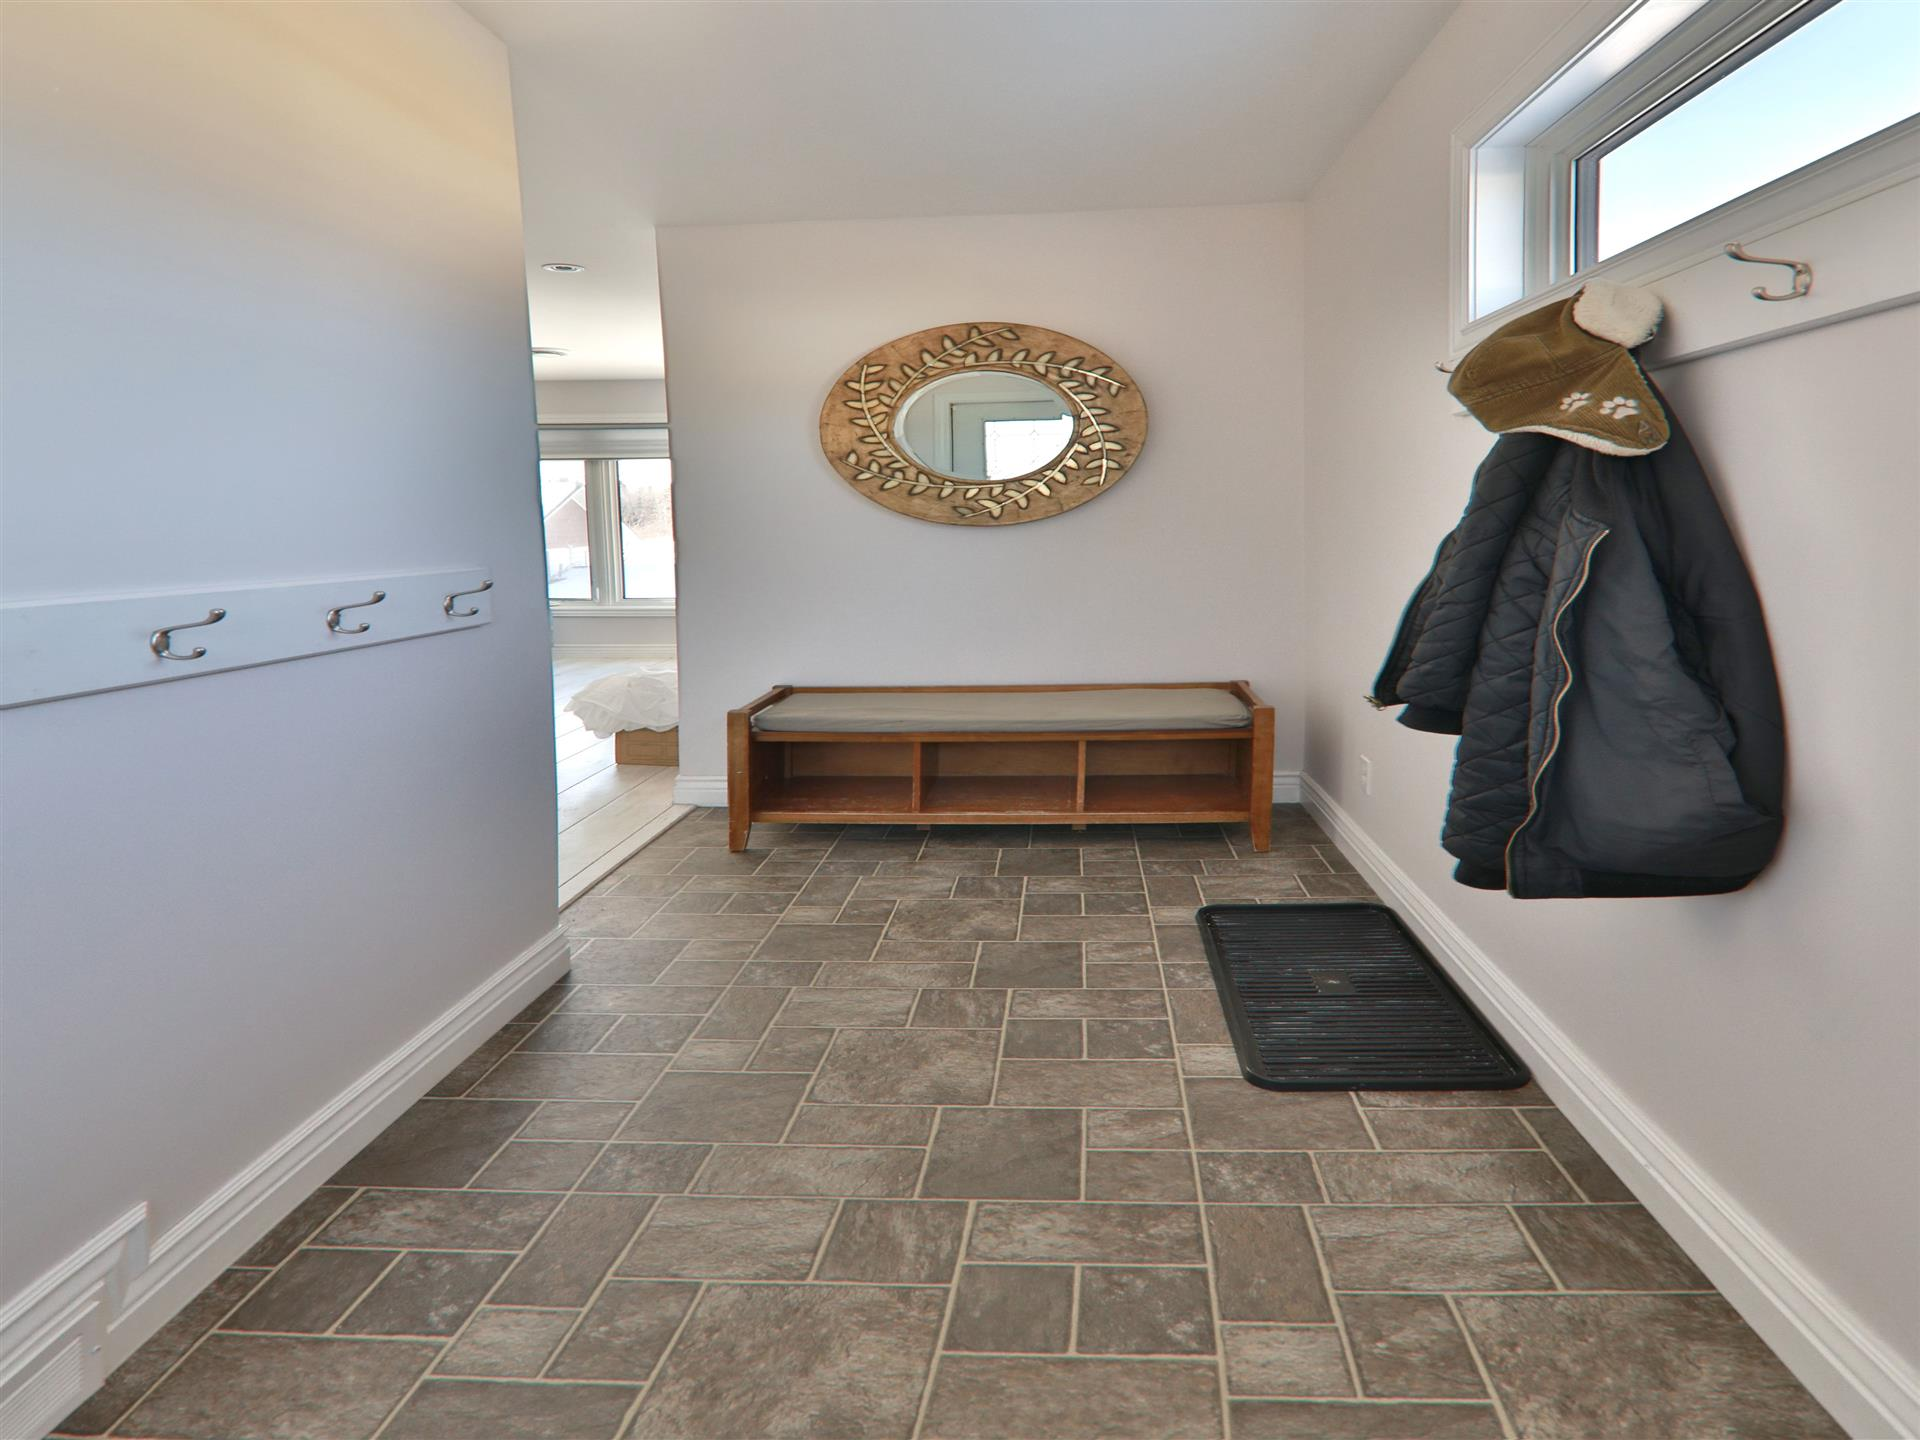 Entry way with coat hooks on the wall, a mirror and a bench